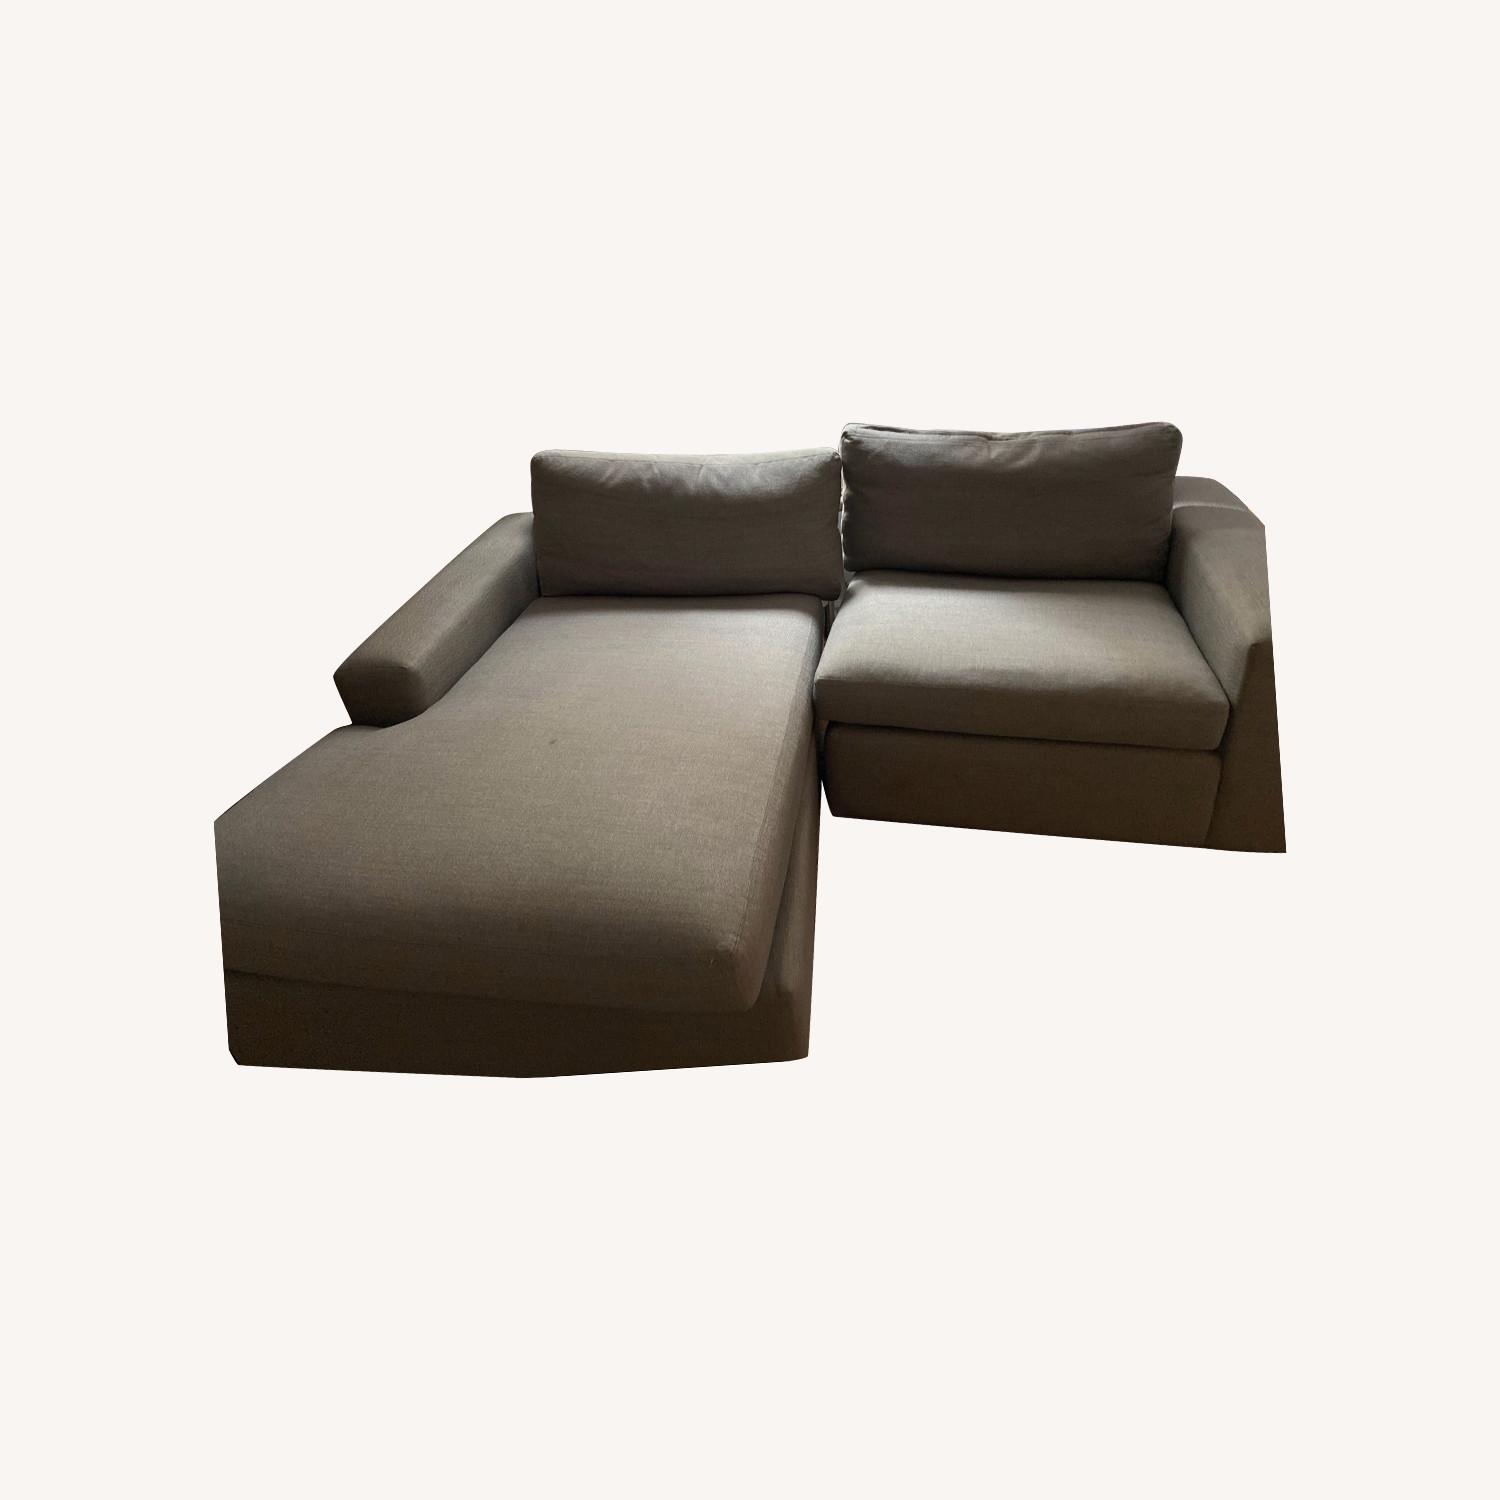 Room & Board Sectional Couch - image-0